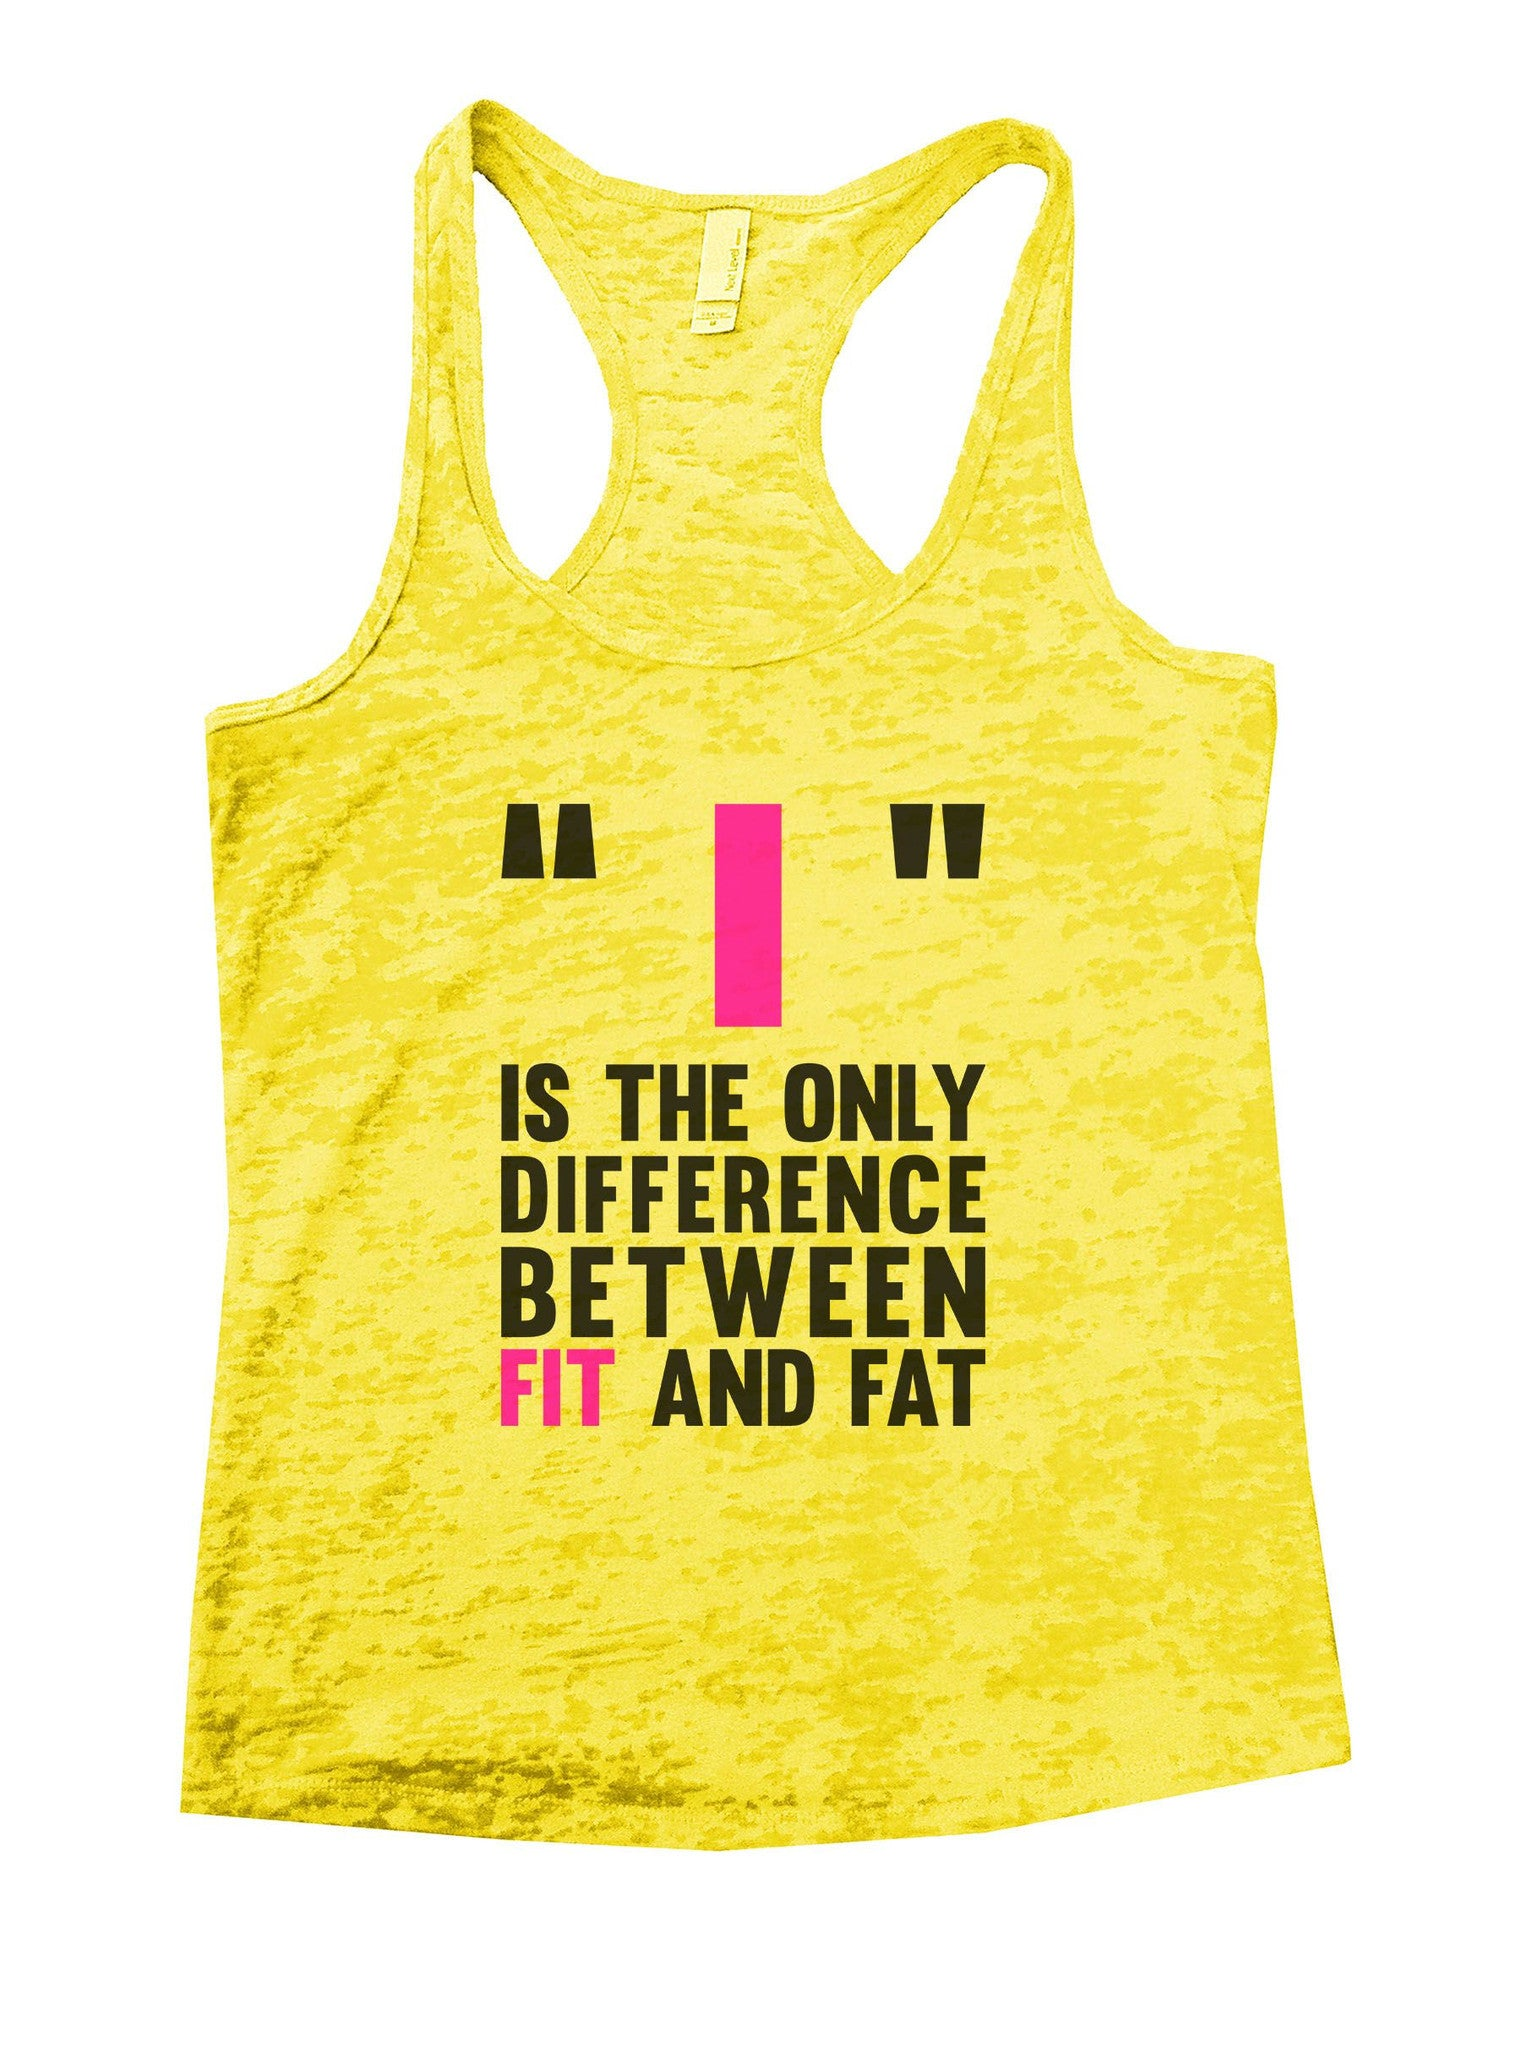 Is The Only Difference Between Fit And Fat Burnout Tank Top By BurnoutTankTops.com - 878 - Funny Shirts Tank Tops Burnouts and Triblends  - 7